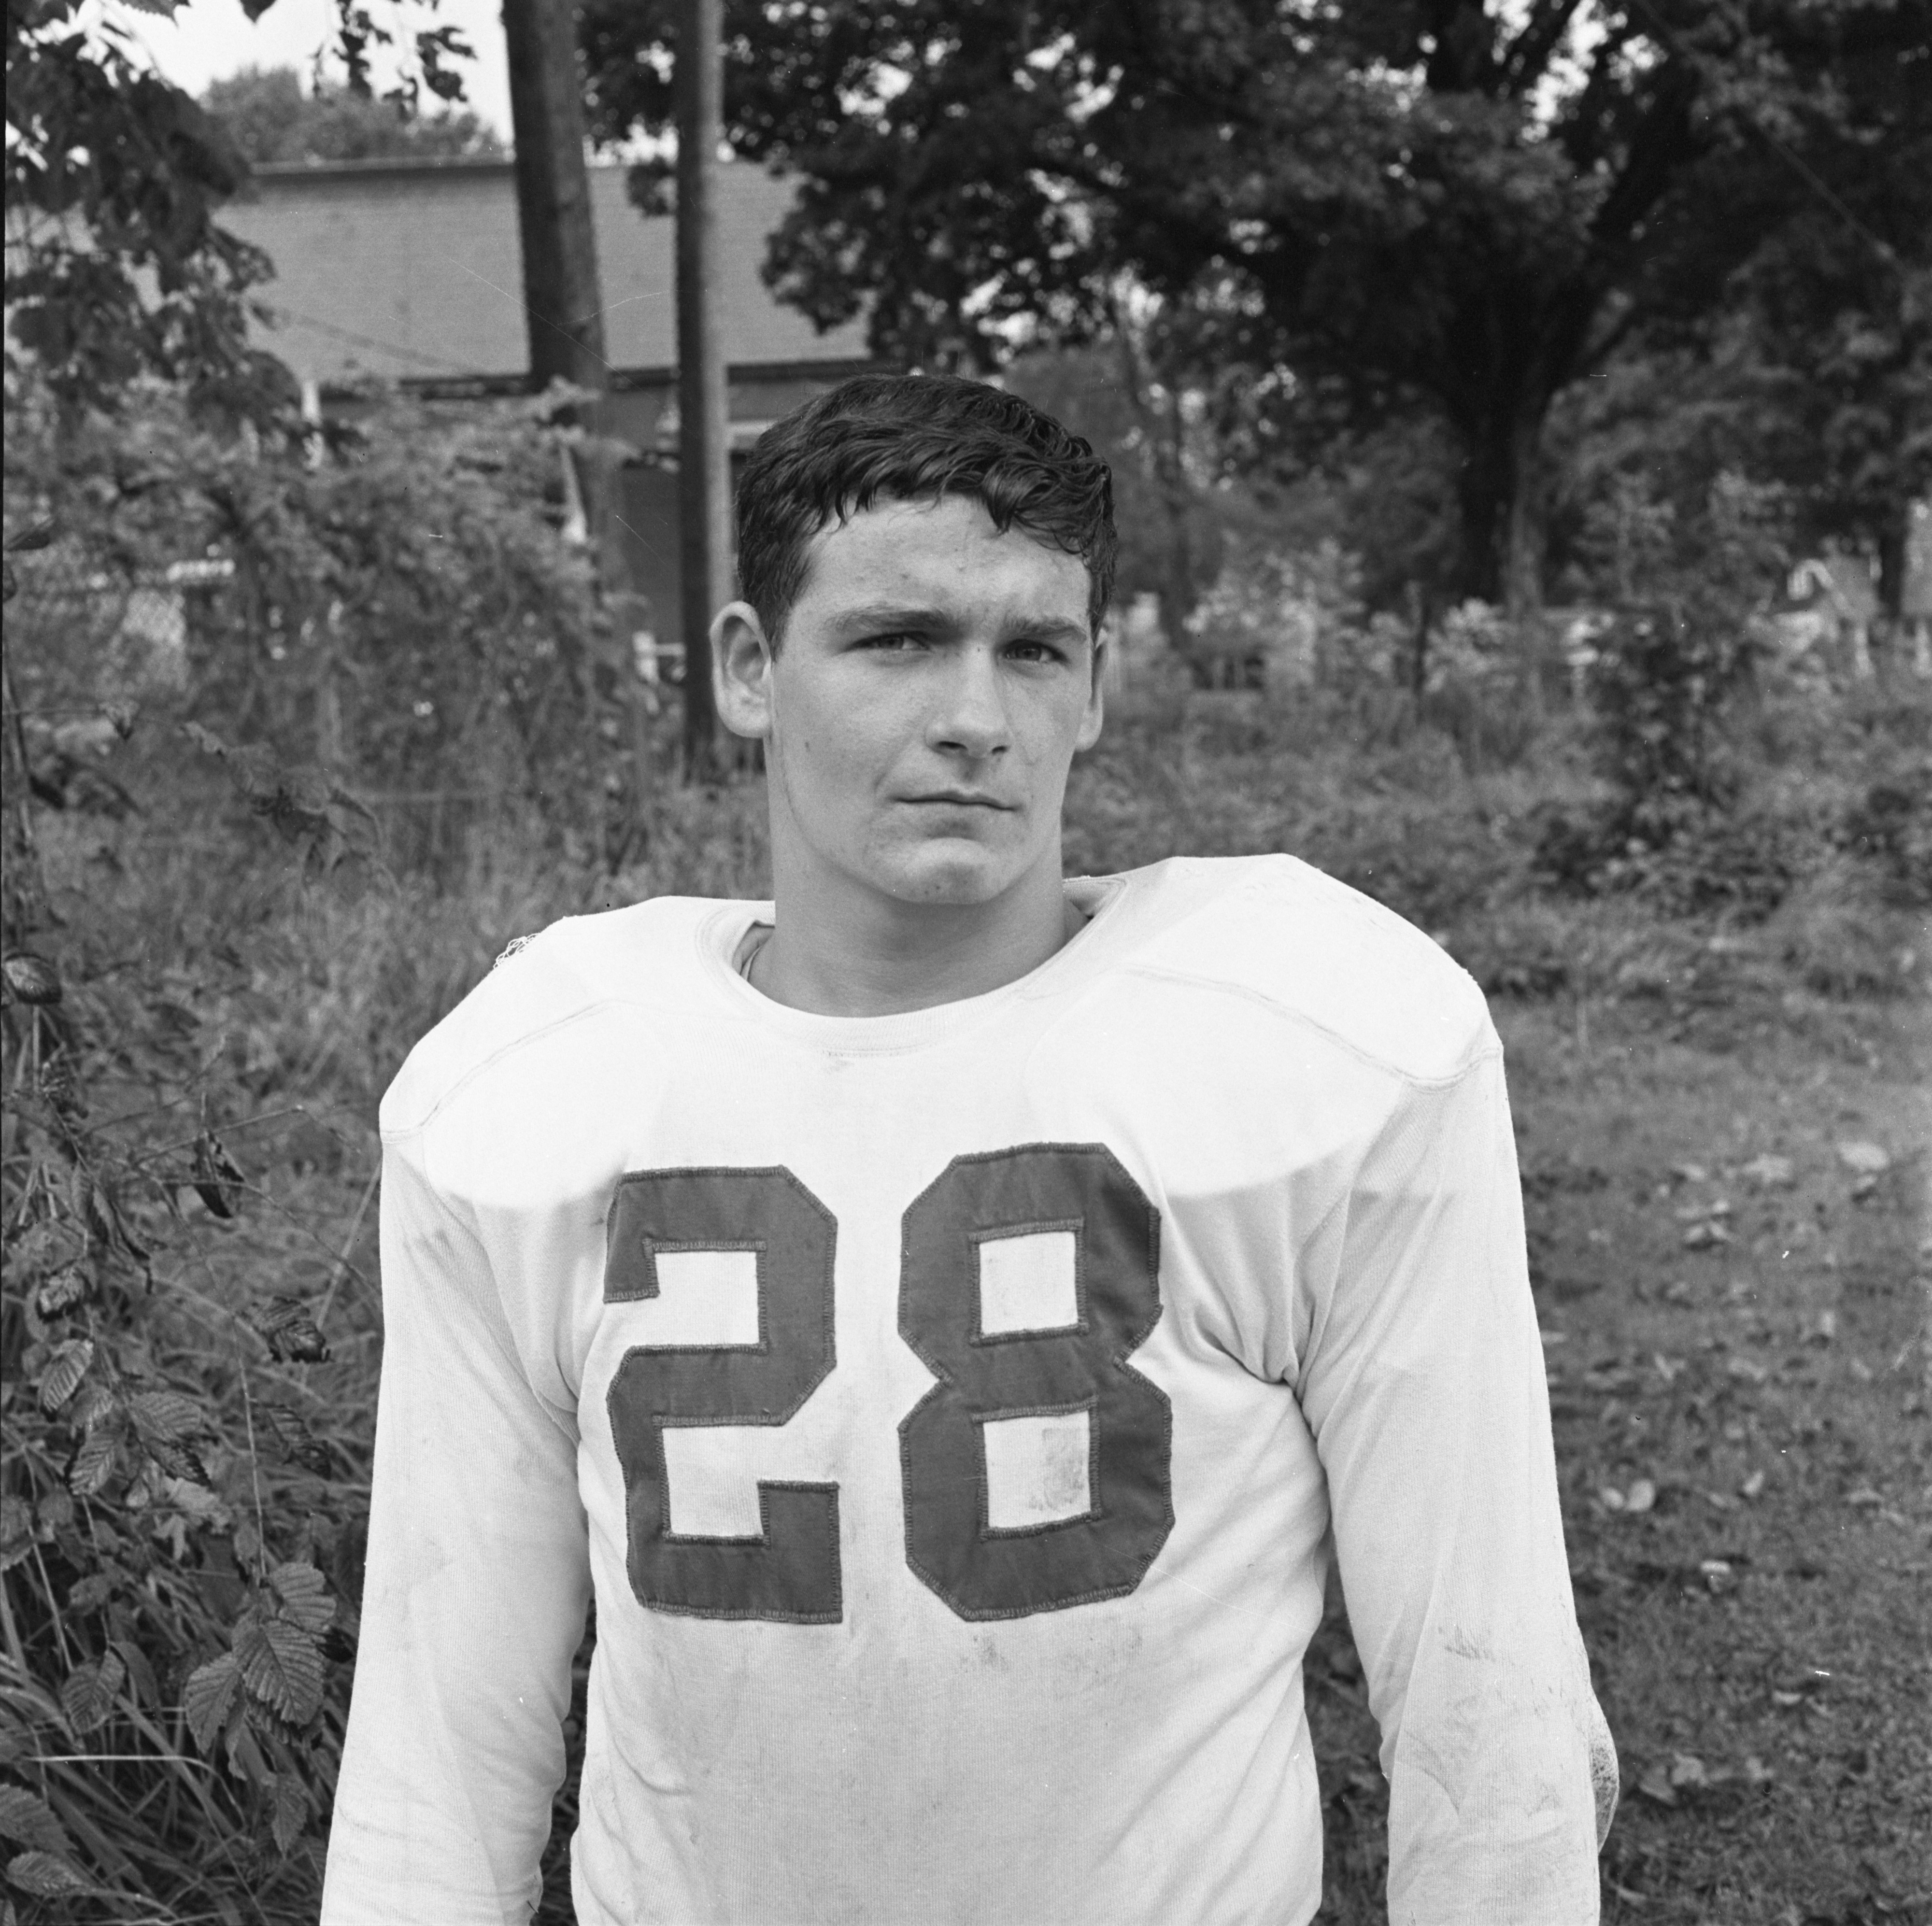 Jim Birmingham - St. Thomas High School Football Team, October 1968 image